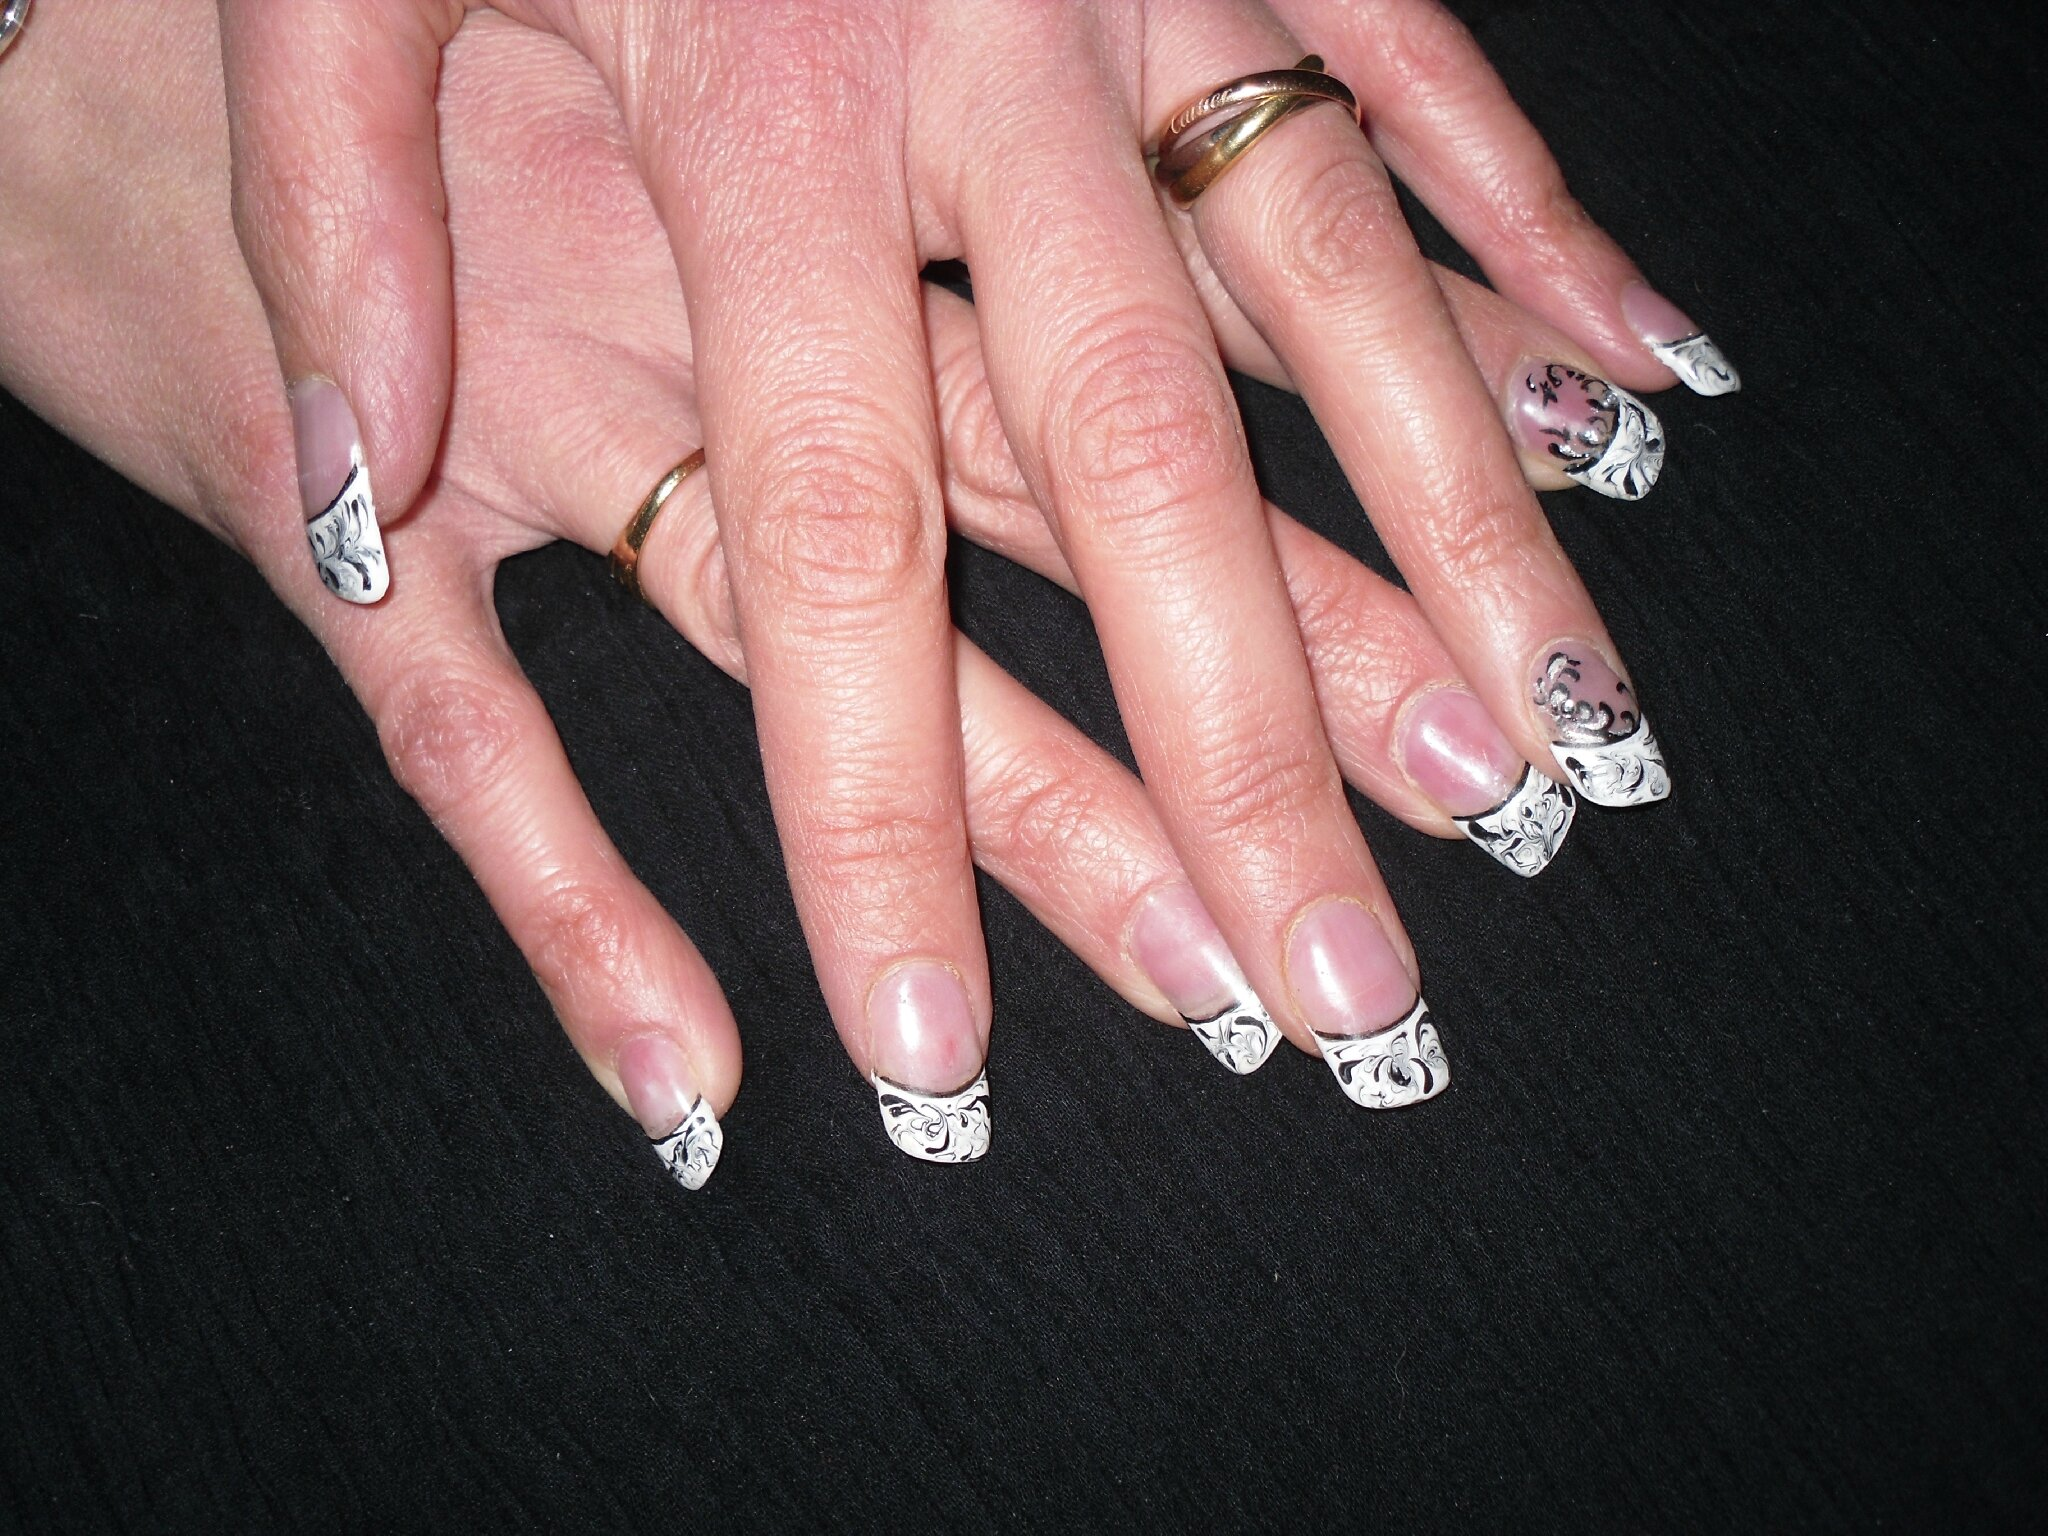 Pose D'ongles en Gel Avec French D'ongles en Gel French